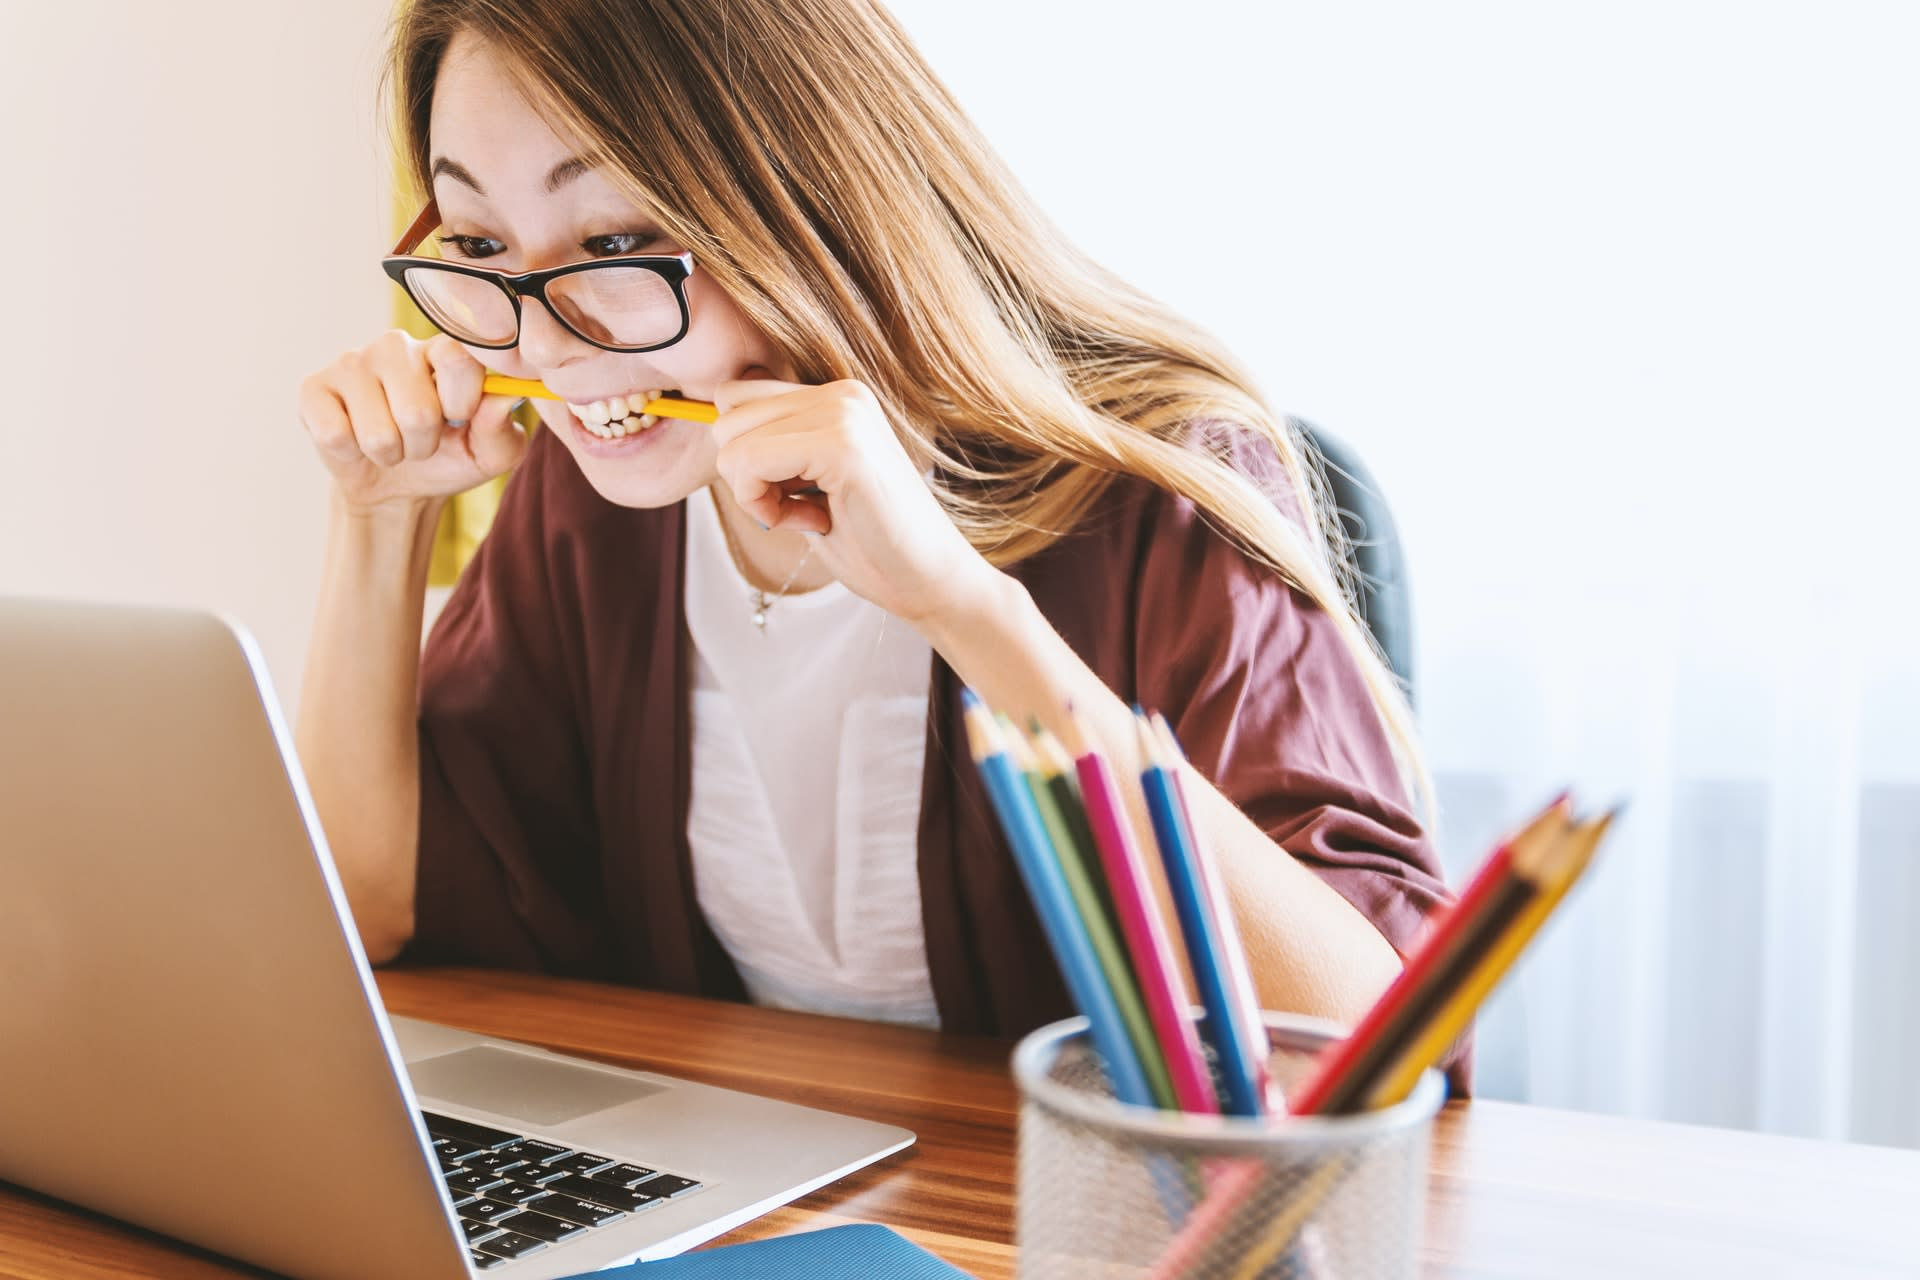 6 Tips to Prevent Burnout When Working from Home